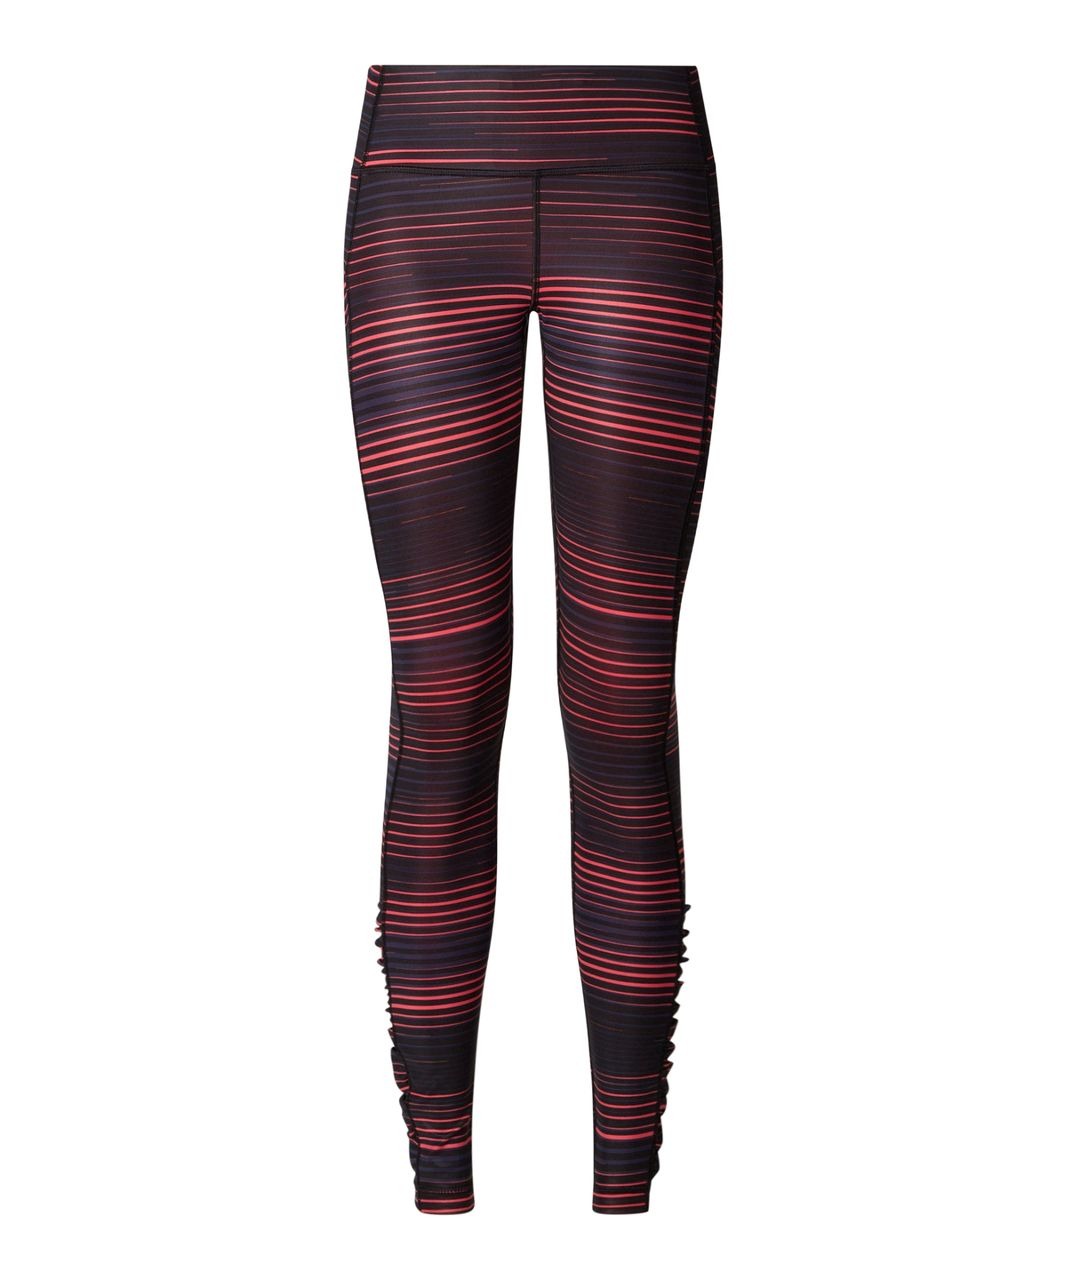 Lululemon Speed Tight IV - Twisted Dune Alarming Black